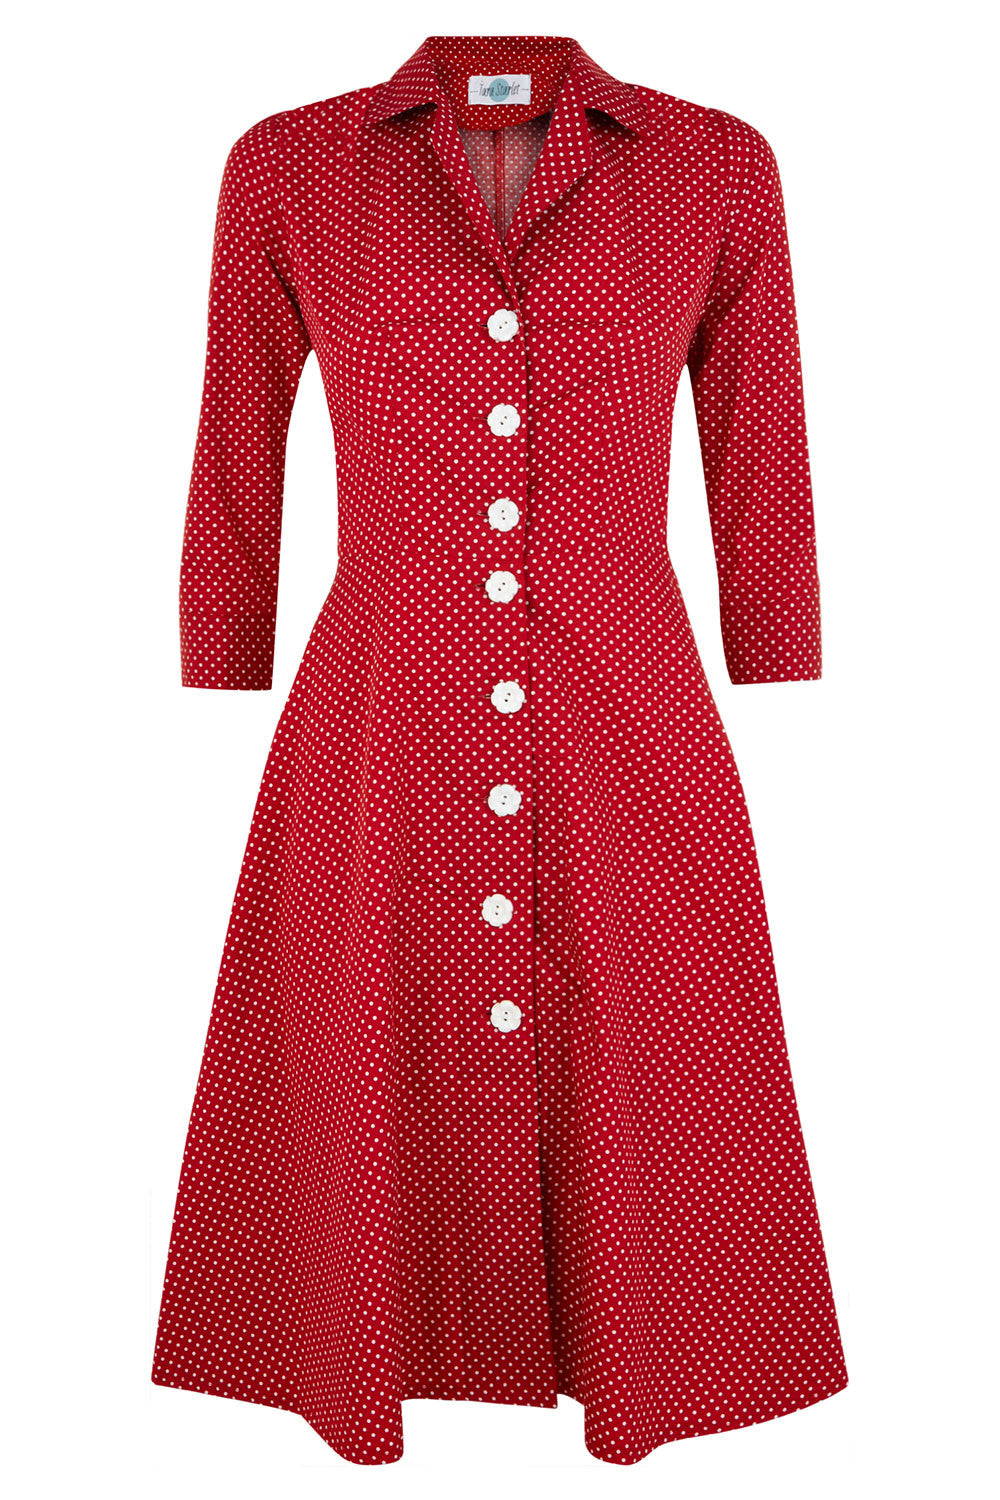 The Molly Dress - Red